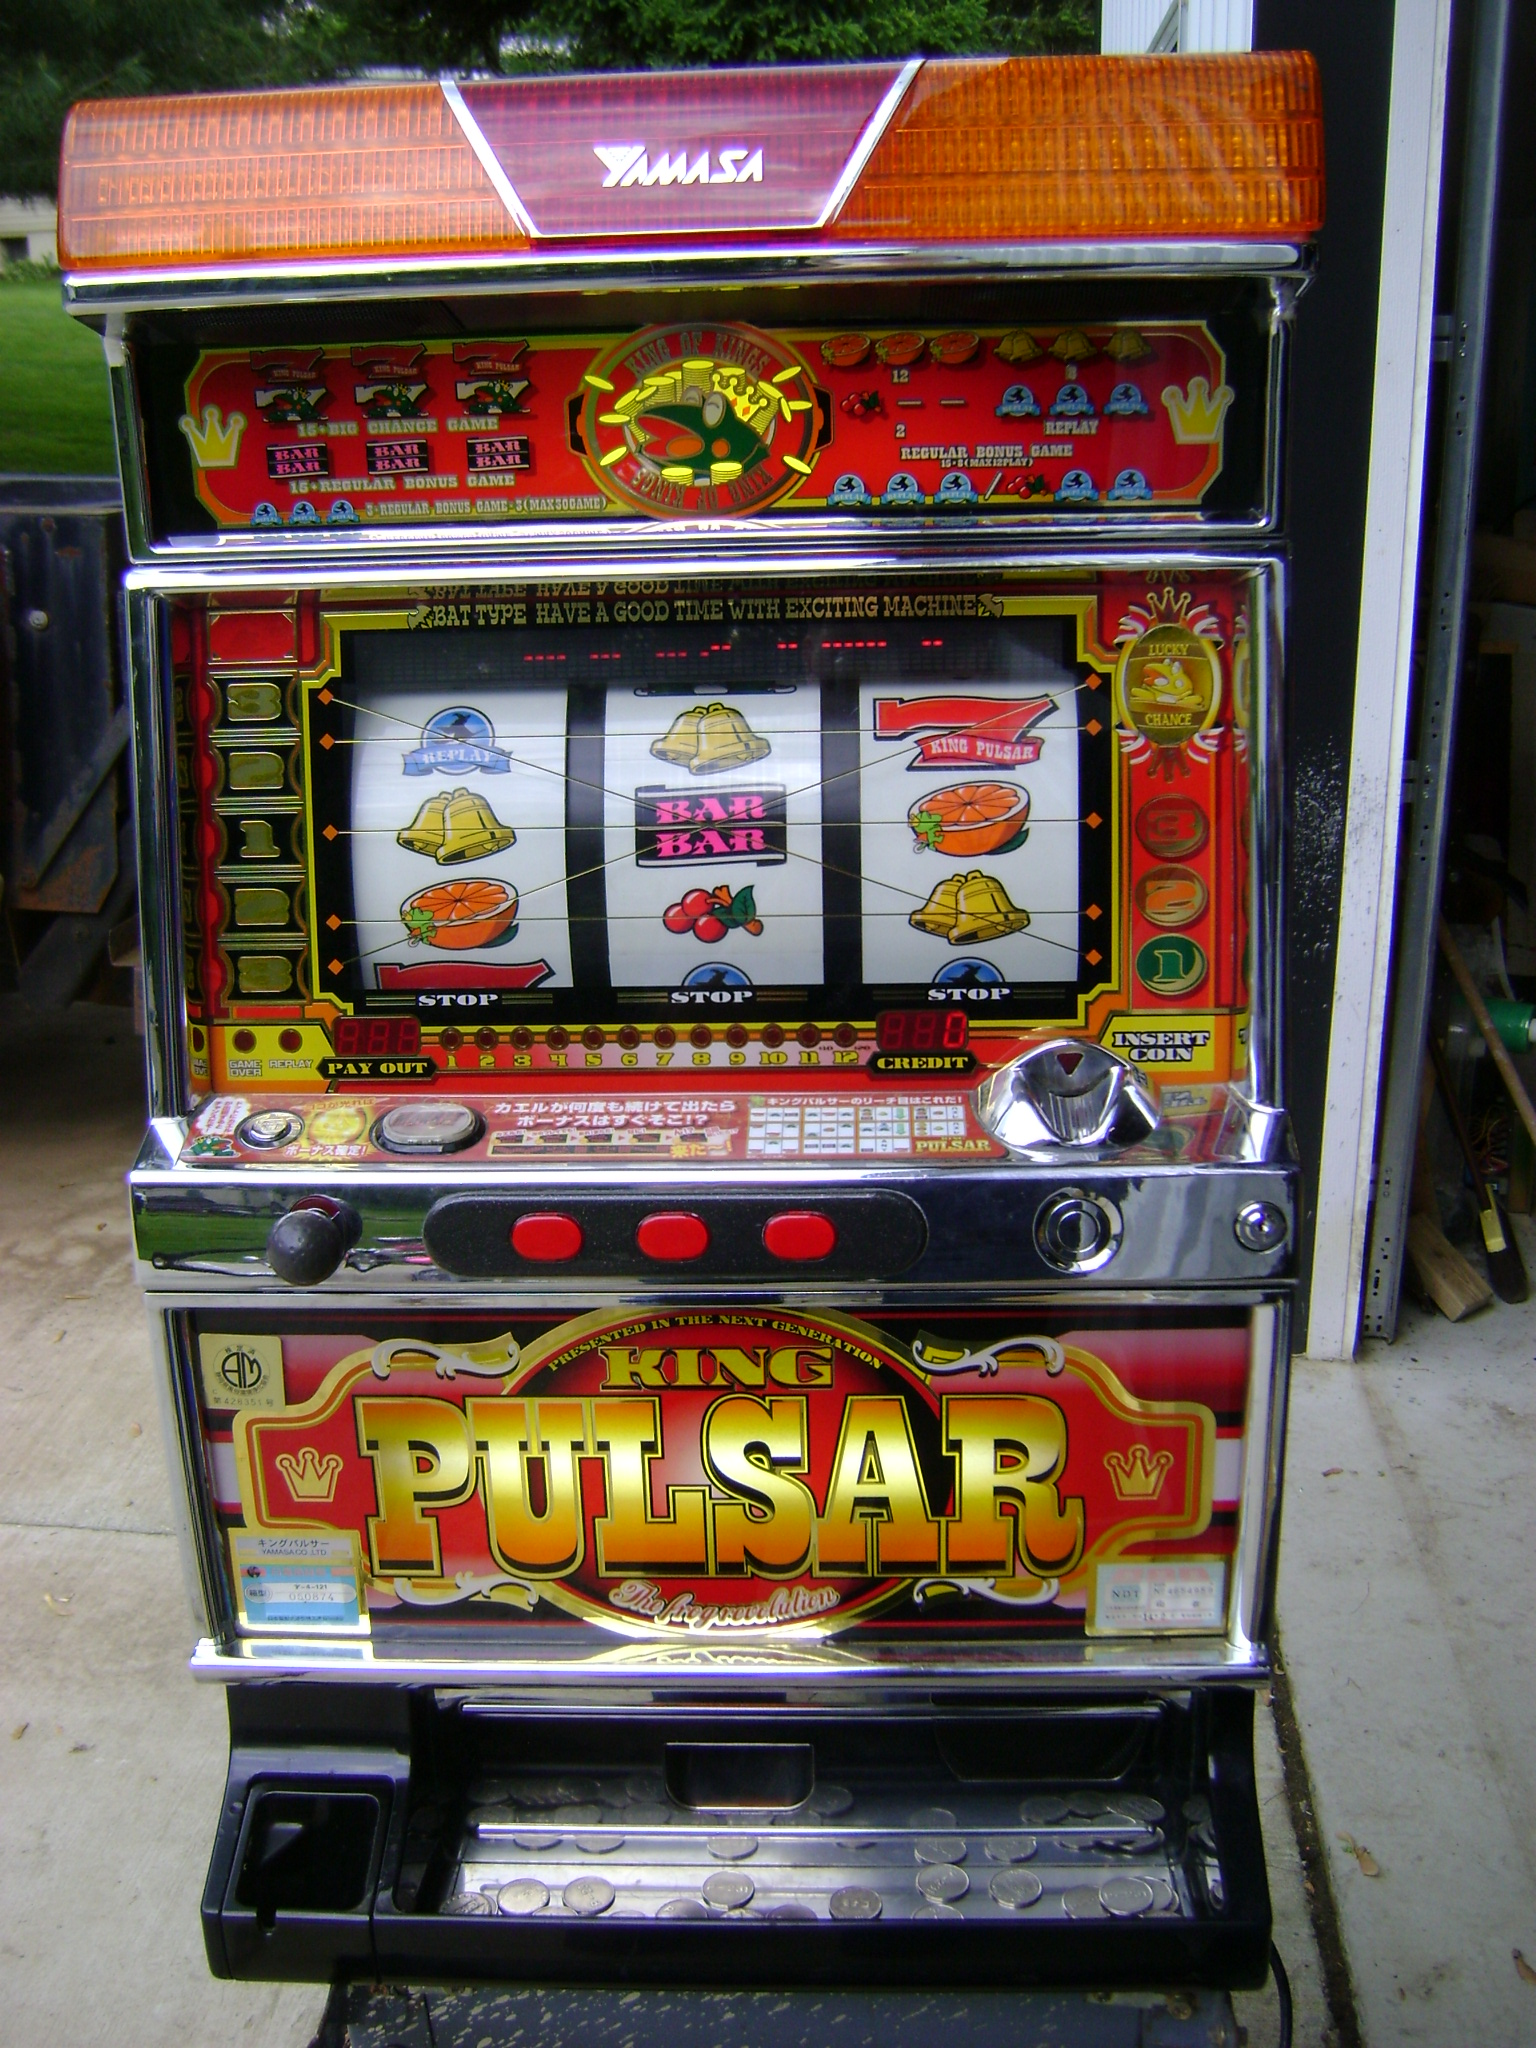 Regolamento slot machine